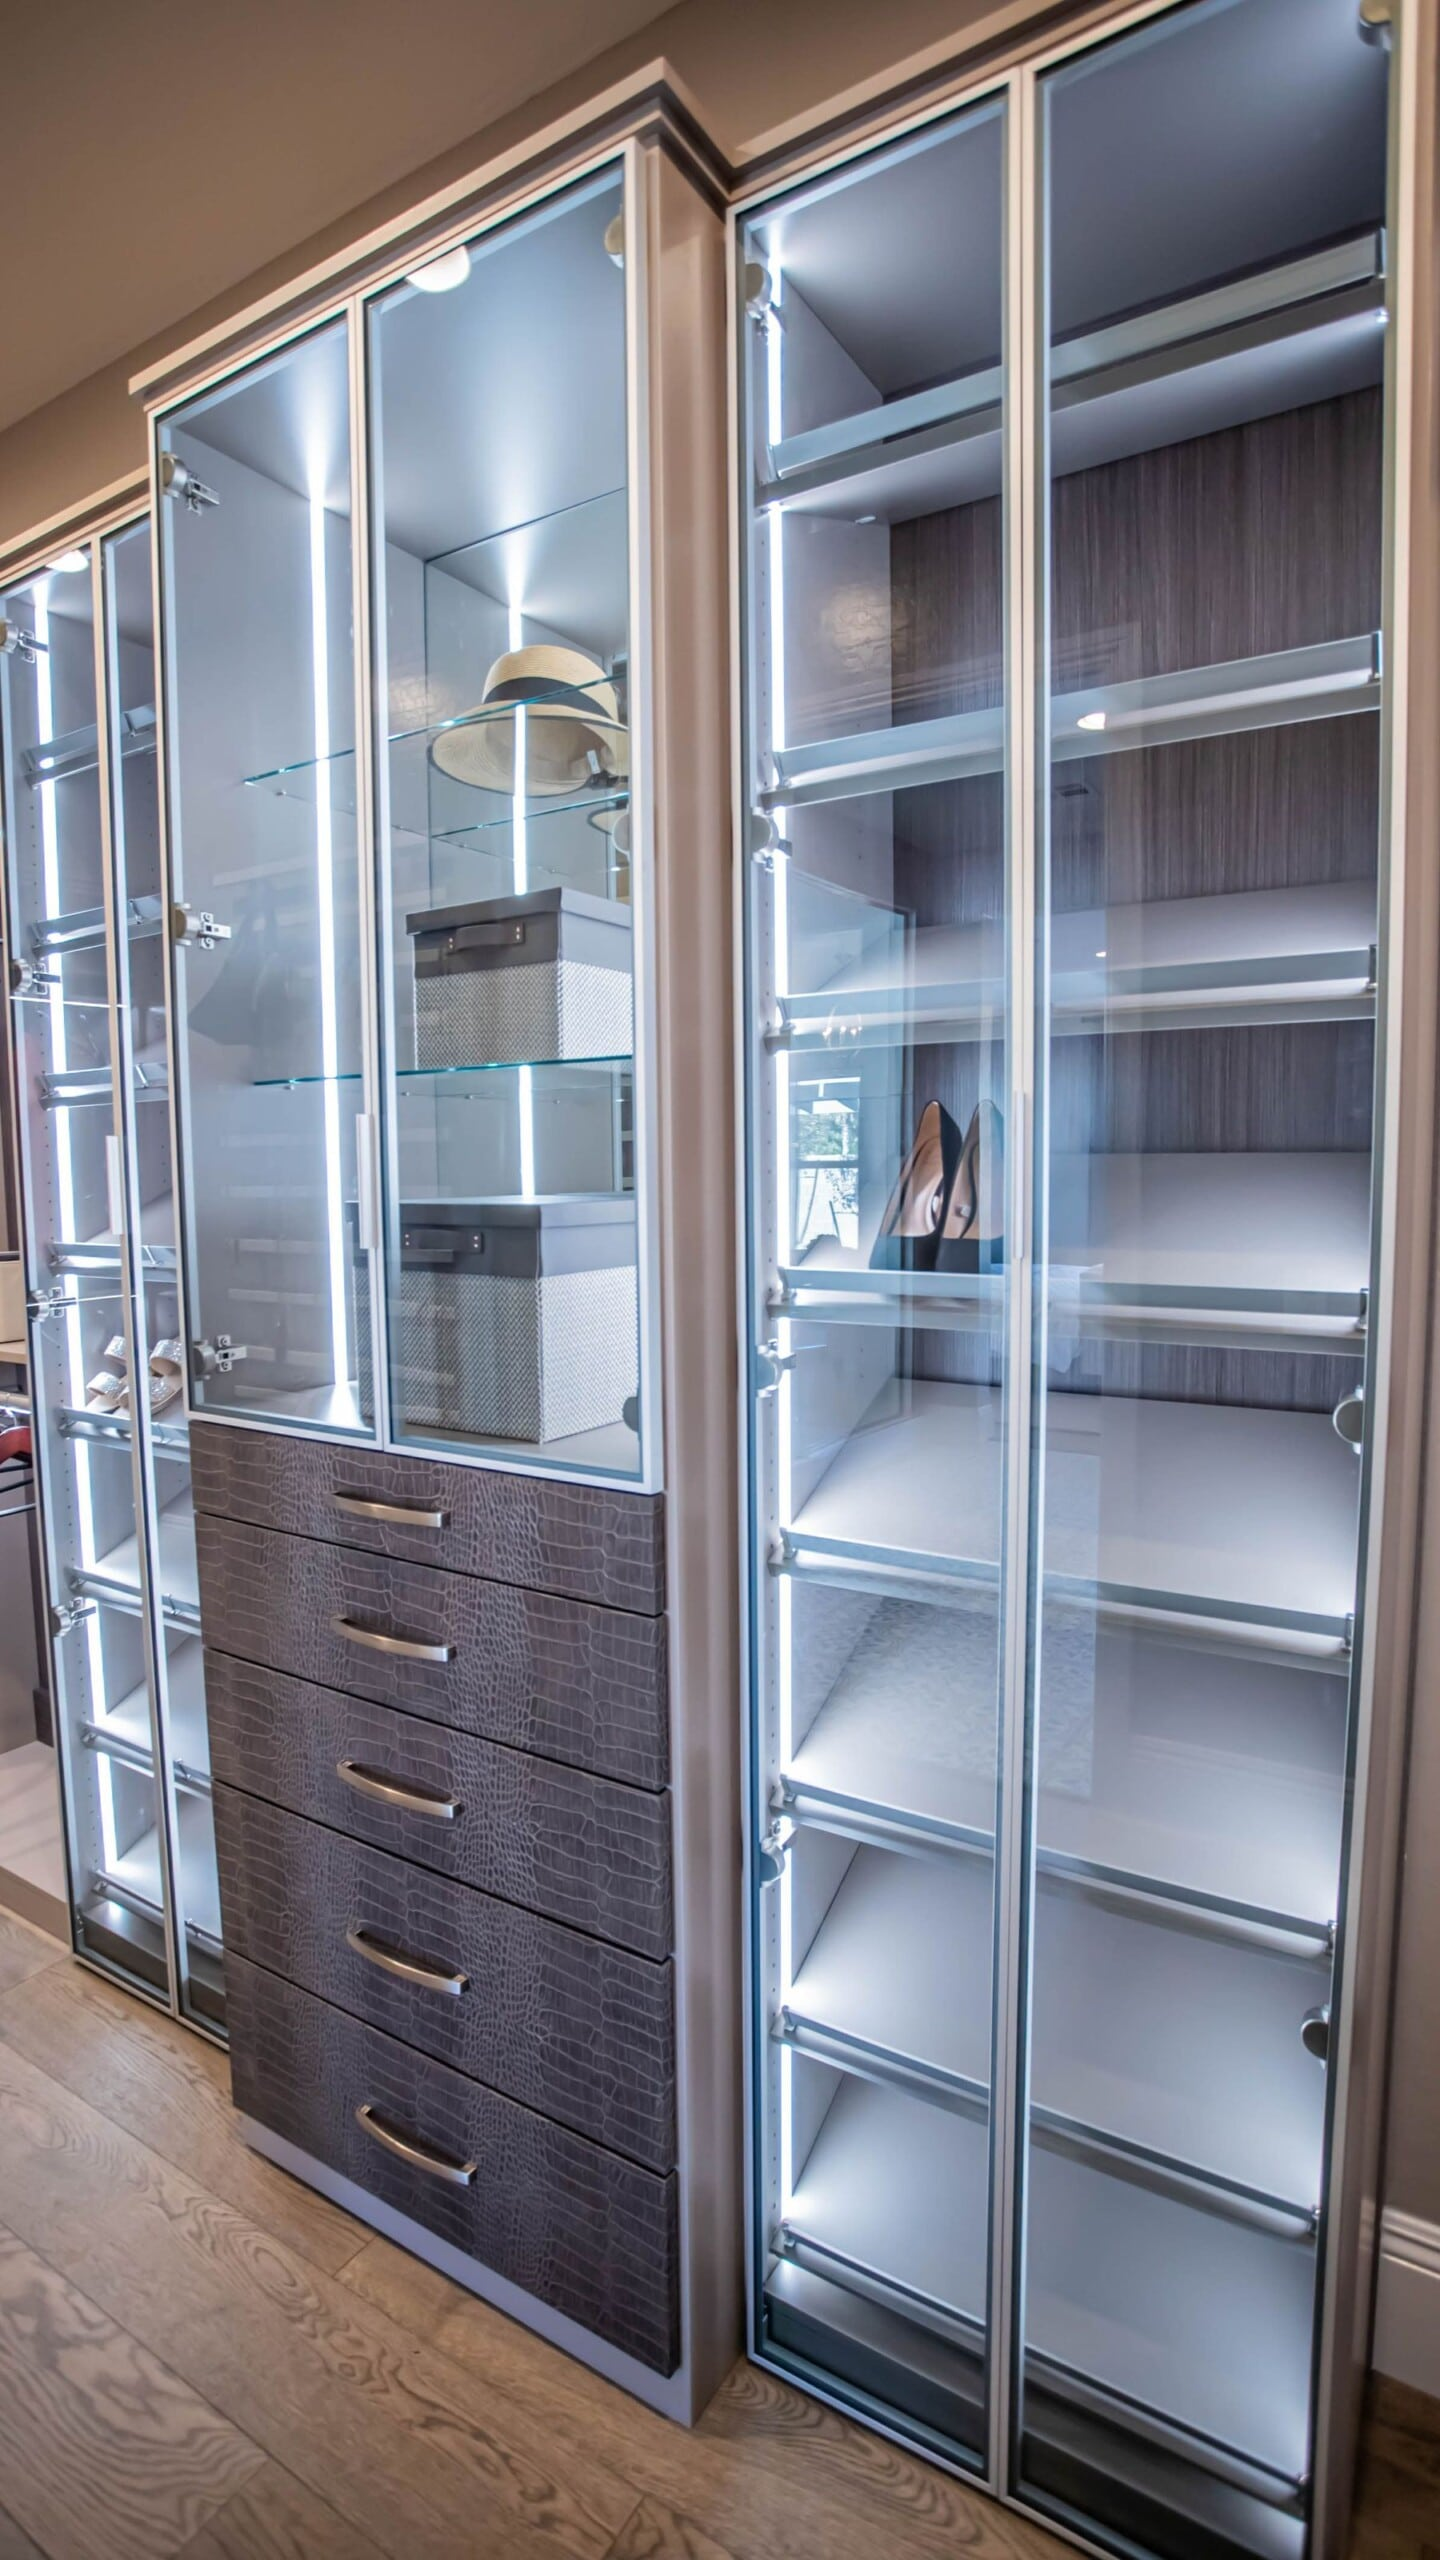 luxury closet design crocodile pattern drawer fronts and shoe racks for her